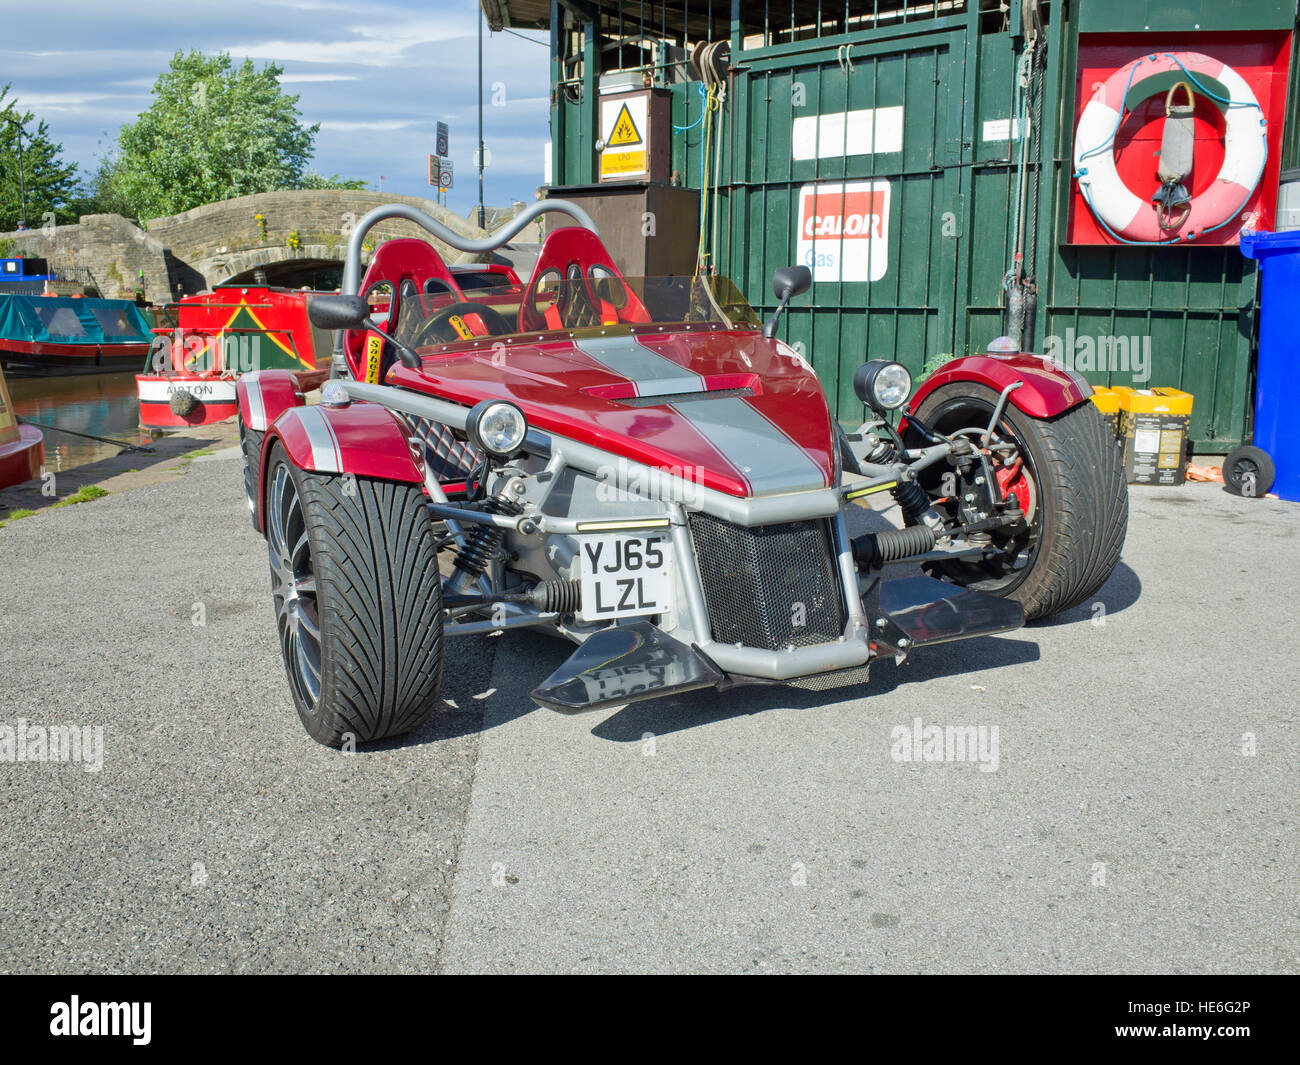 Rtr Mev Rocket Roadster Kit Car Based On Ford Focus Stock Photo